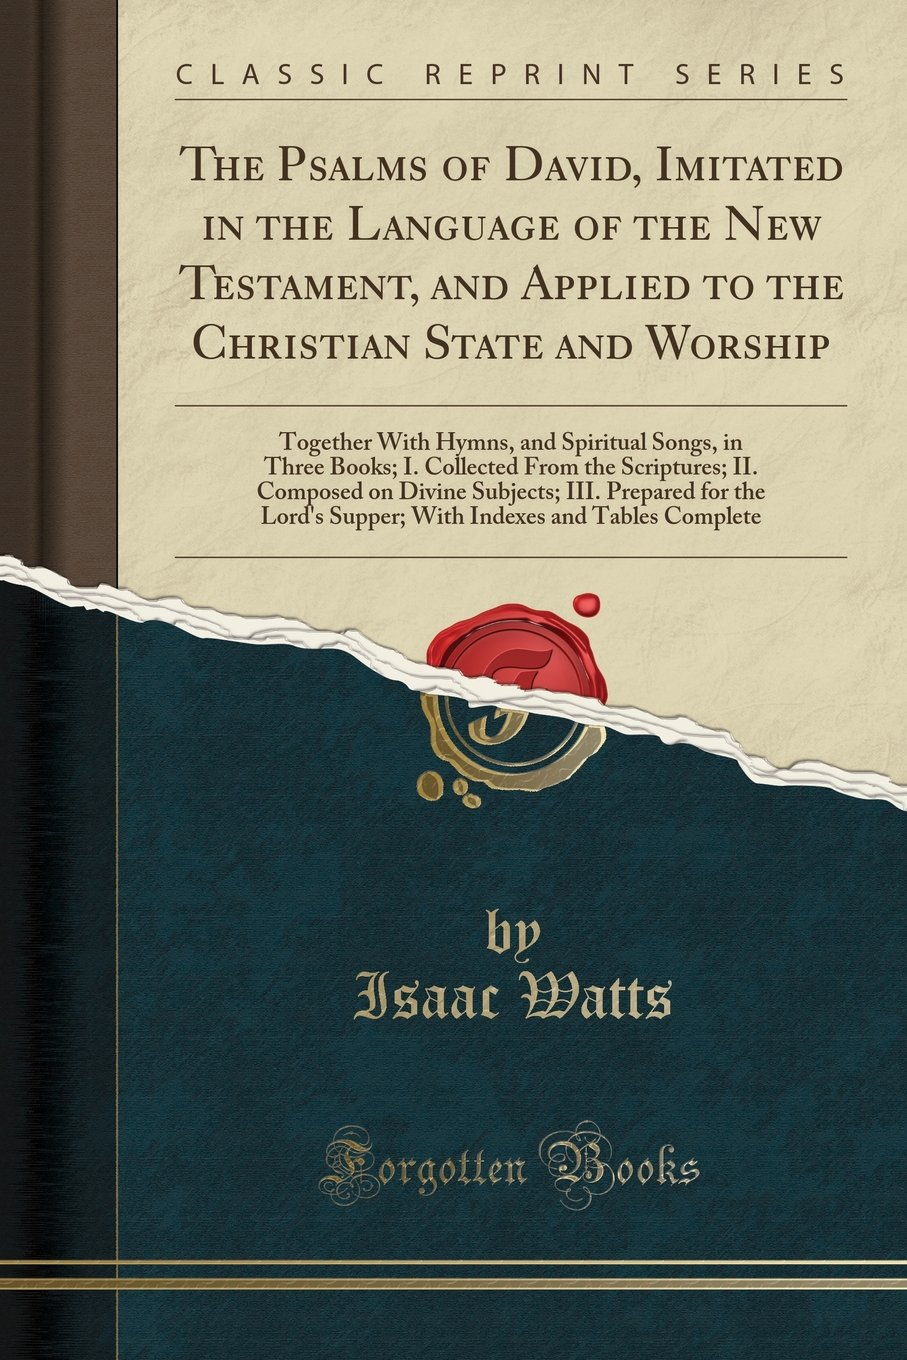 The Psalms of David, Imitated in the Language of the New Testament, and Applied to the Christian State and Worship: Together With Hymns, and Spiritual ... Composed on Divine Subjects; III. Prepared by Forgotten Books